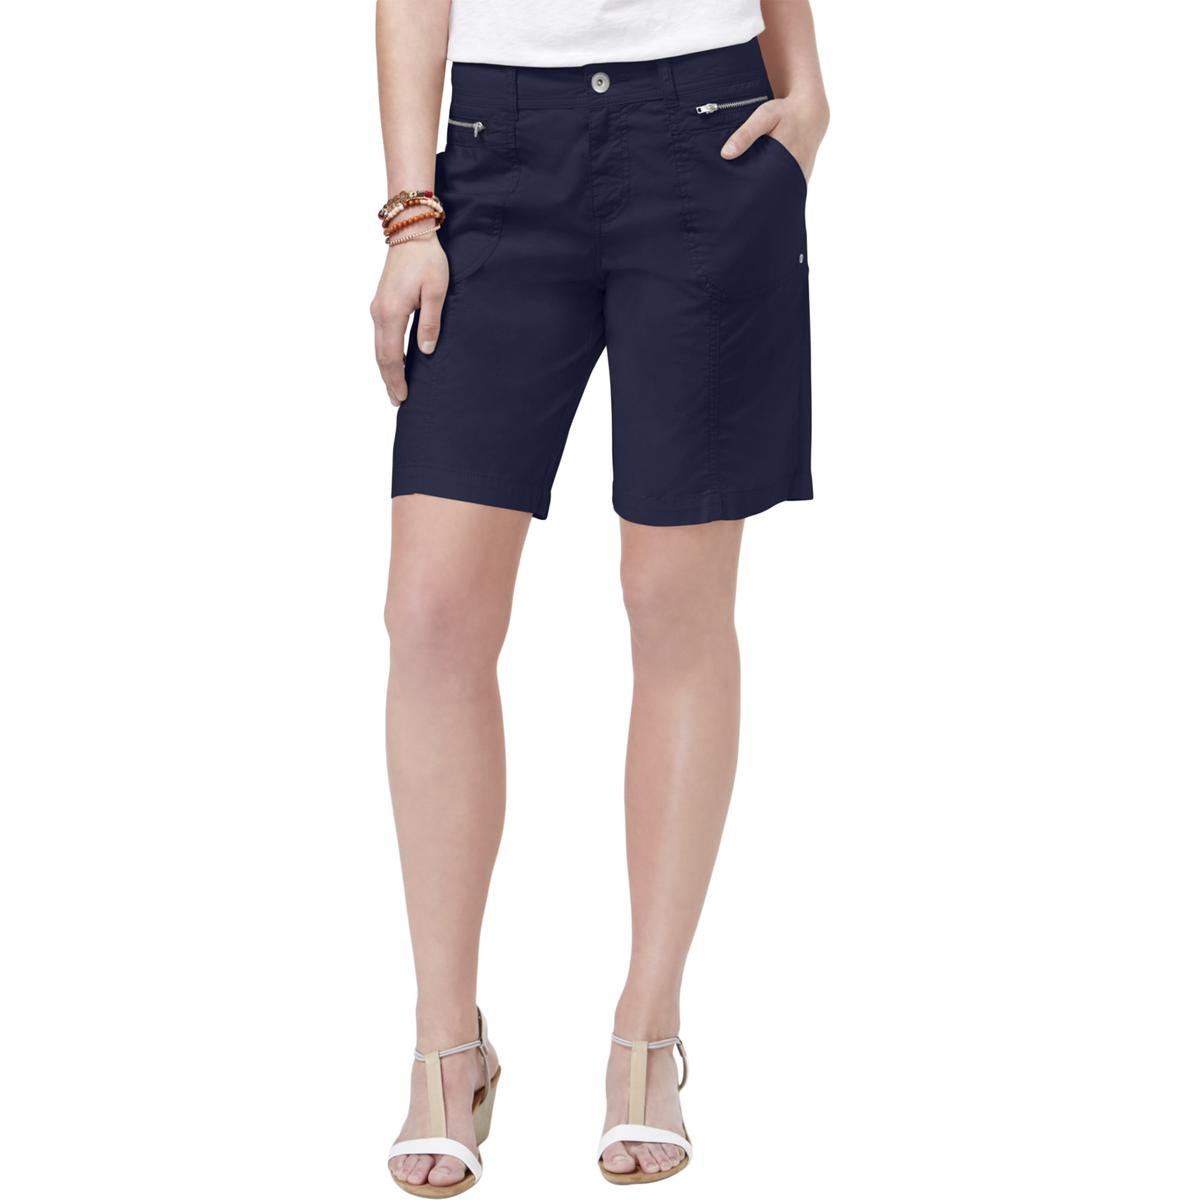 Style & Co. Womens Petites Mid-Rise Zip-Detail Casual Shorts Navy 10P